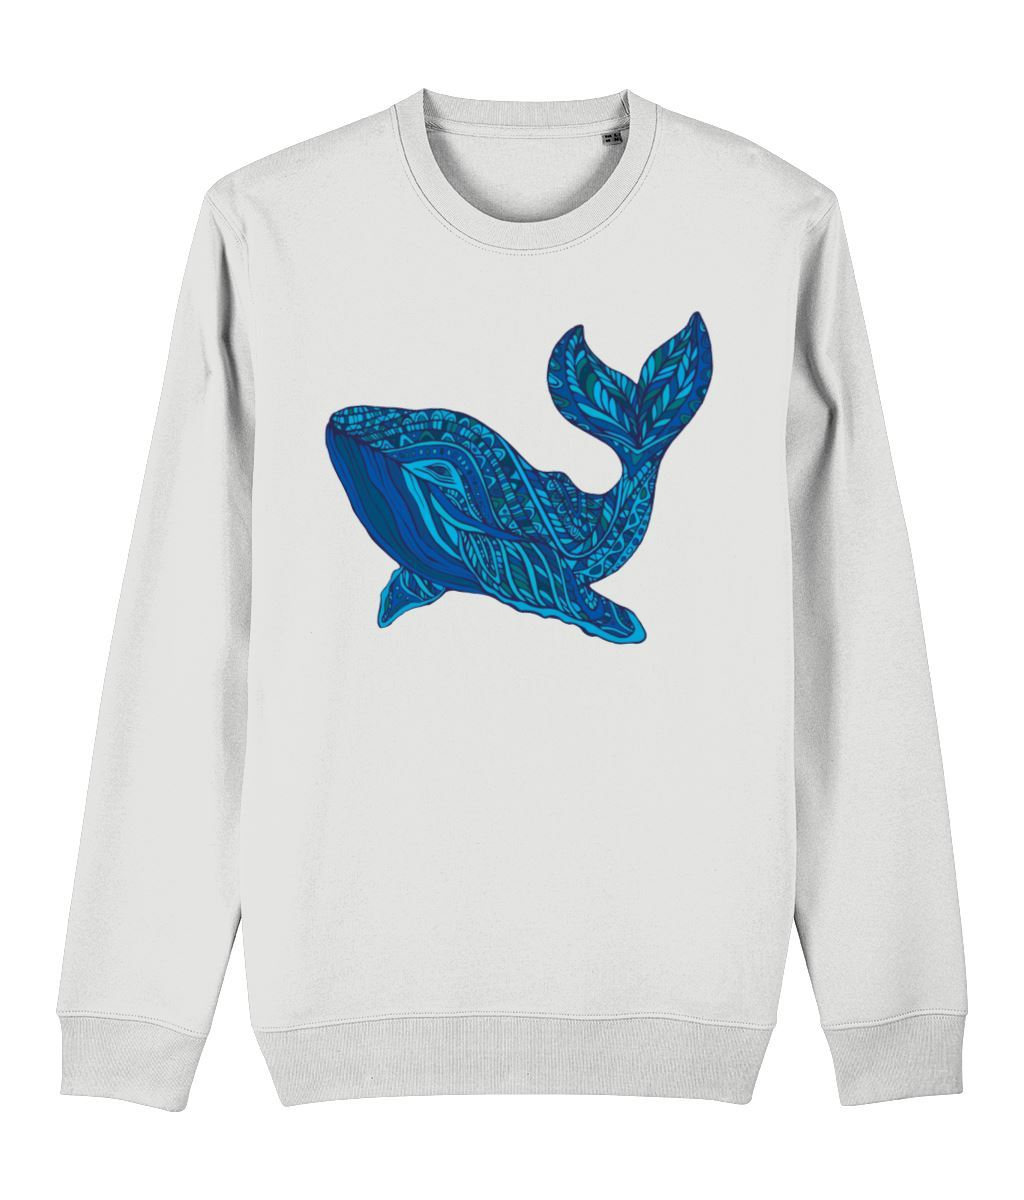 Blue Whale Sweatshirt Clothing IndianBelieves White X-Small